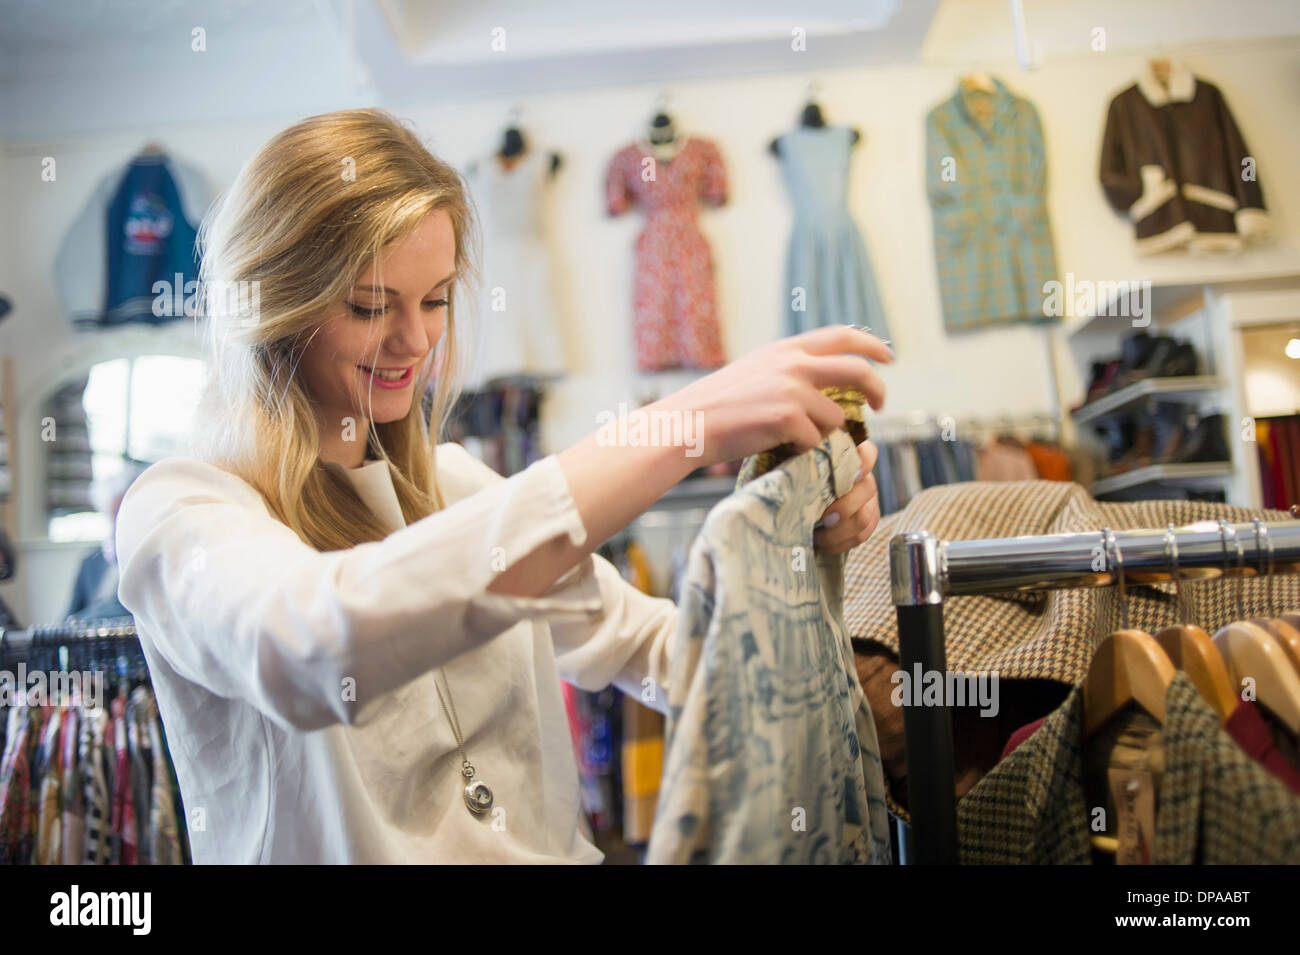 Woman looking at top garment - Stock Image